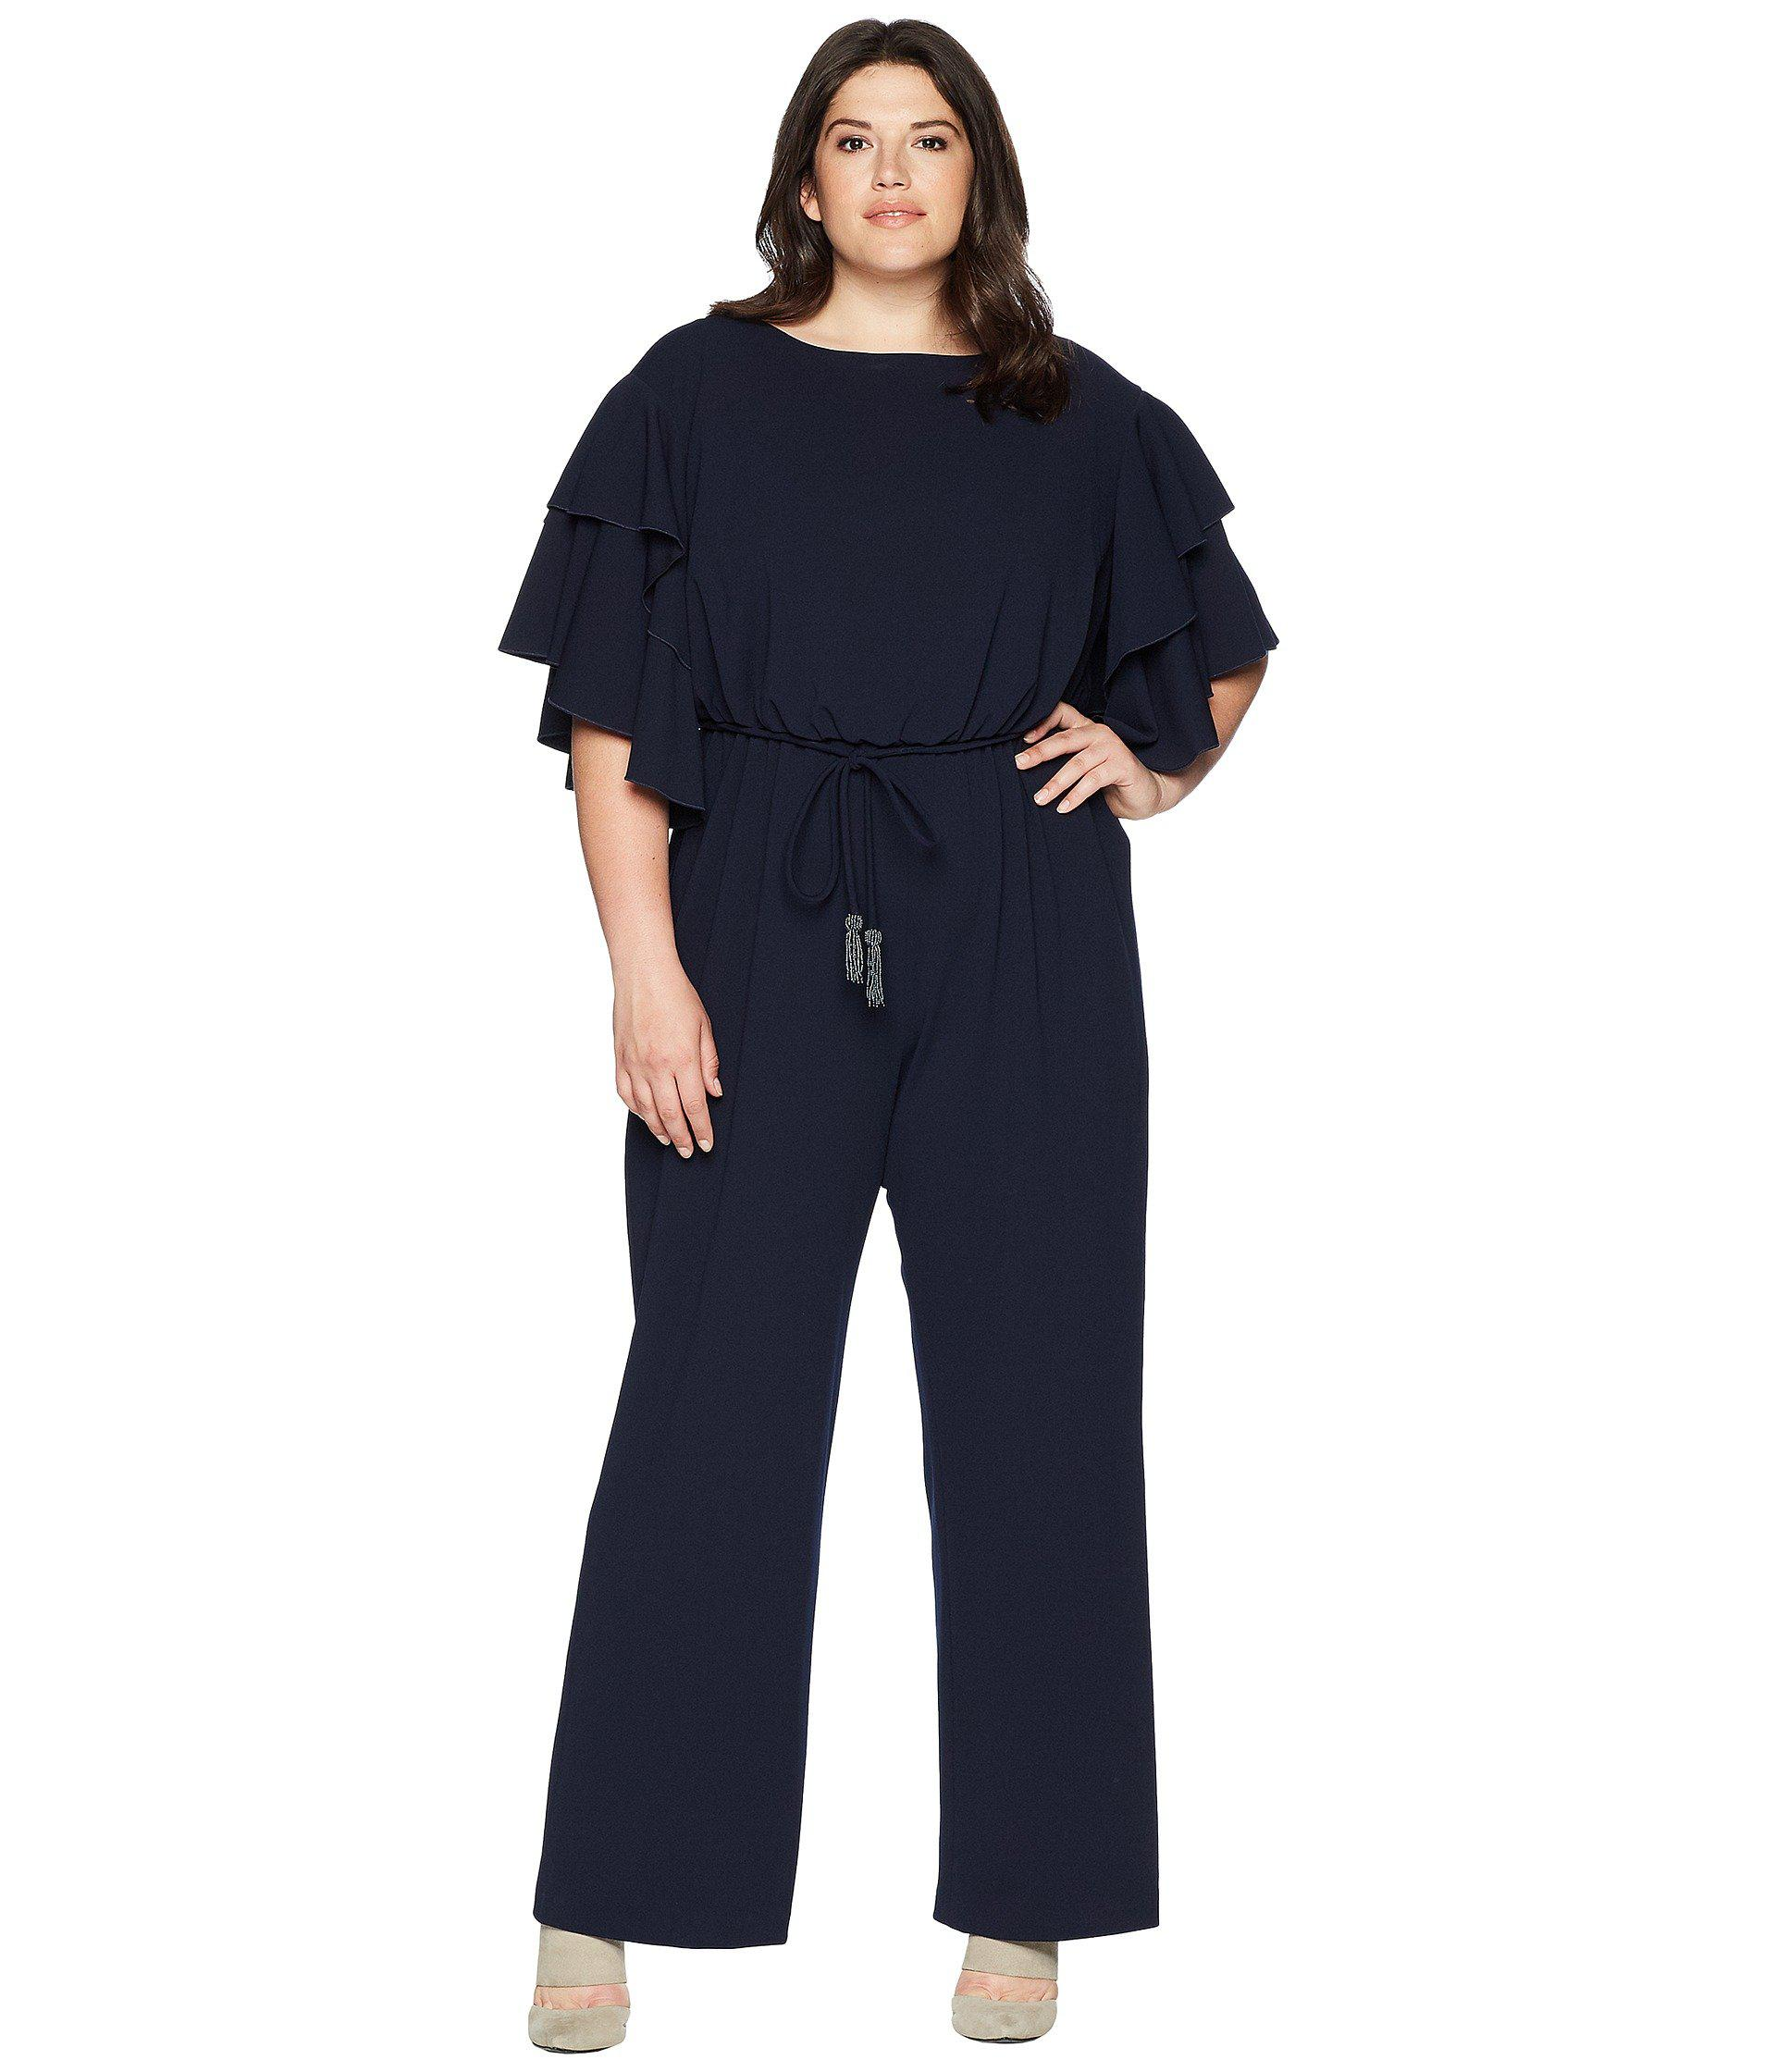 95455d8a2093 Lyst - Adrianna Papell Plus Size Blouson Ruffle Sleeve Jumpsuit in ...